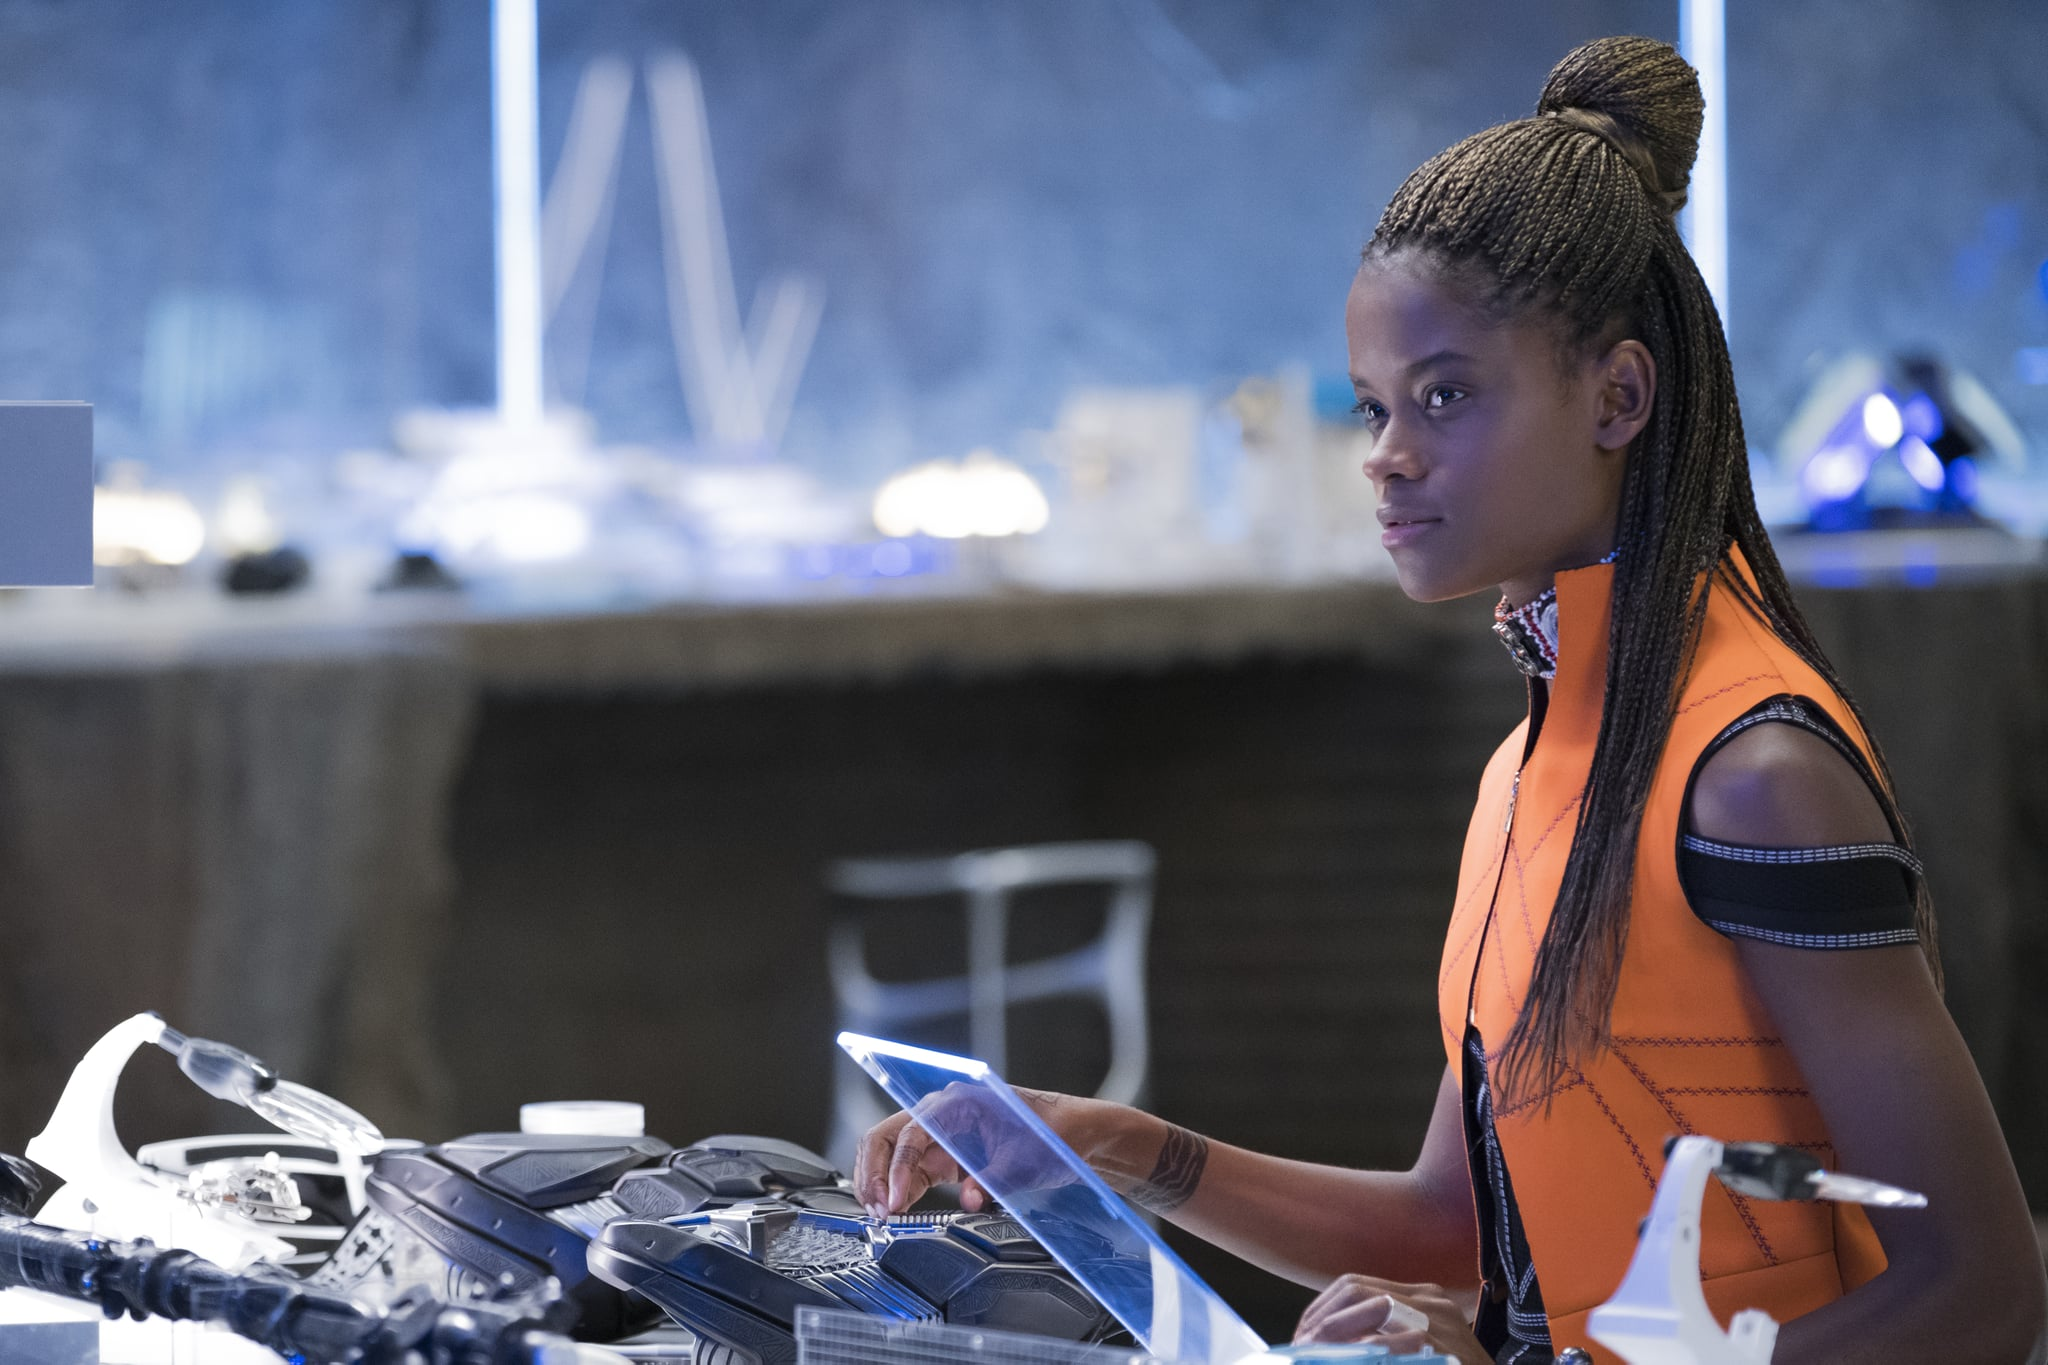 Shuri working on one of her gadgets.